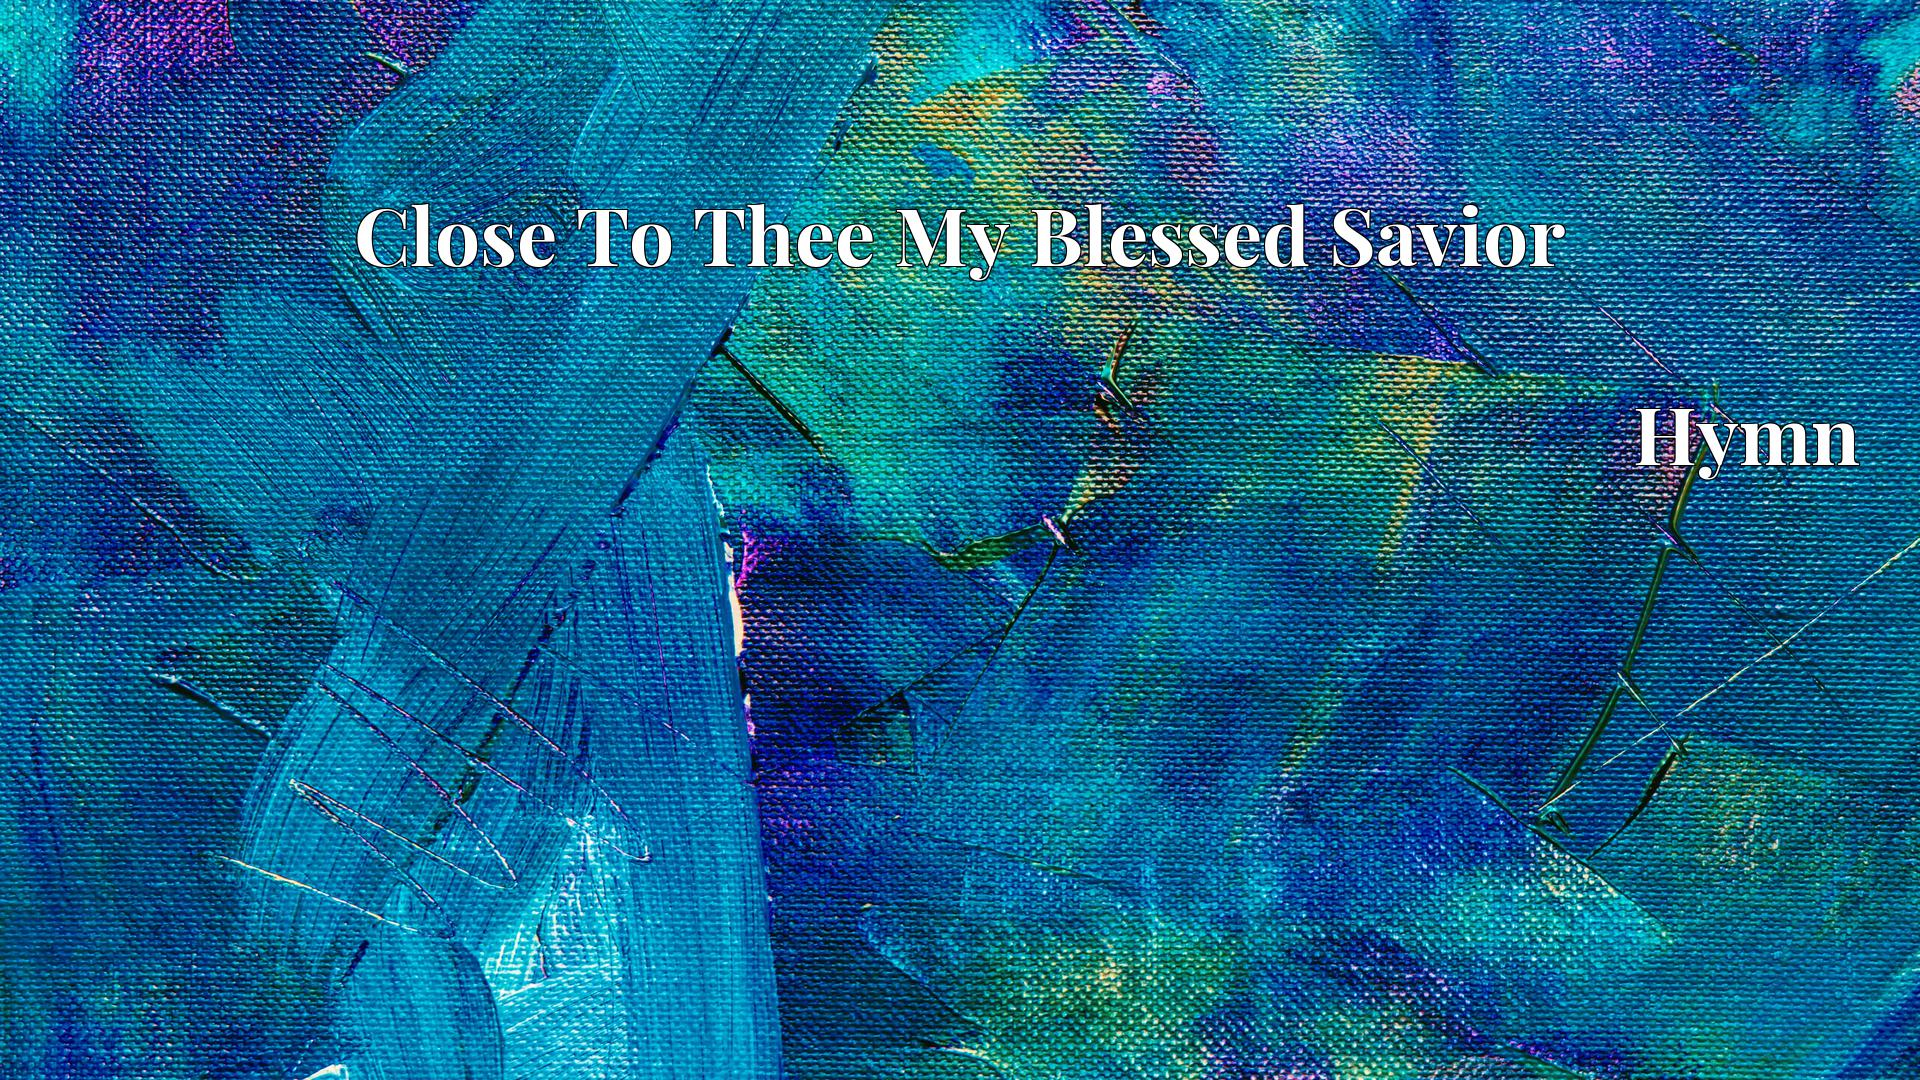 Close To Thee My Blessed Savior - Hymn